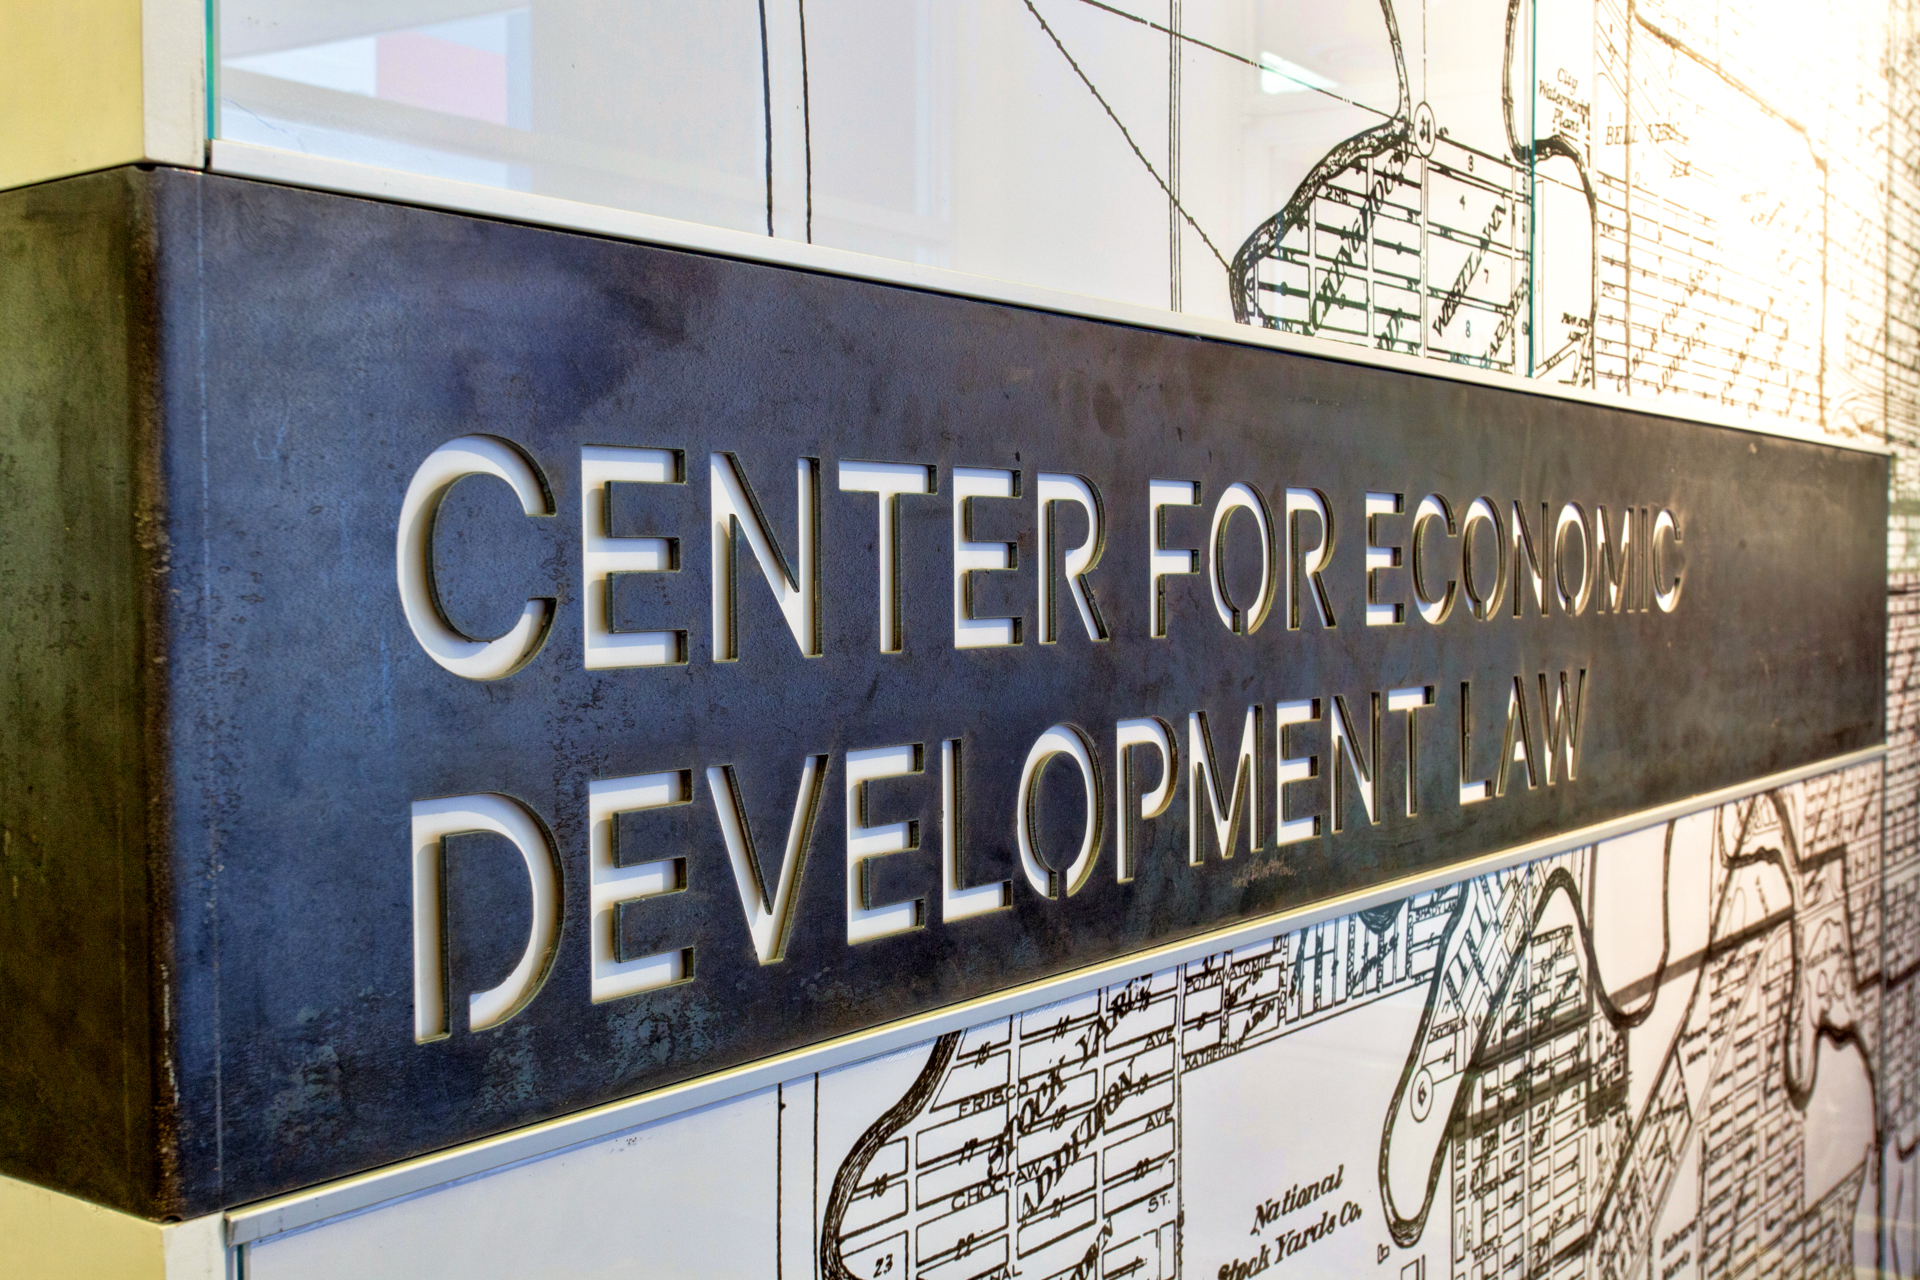 Center for Economic Development Law